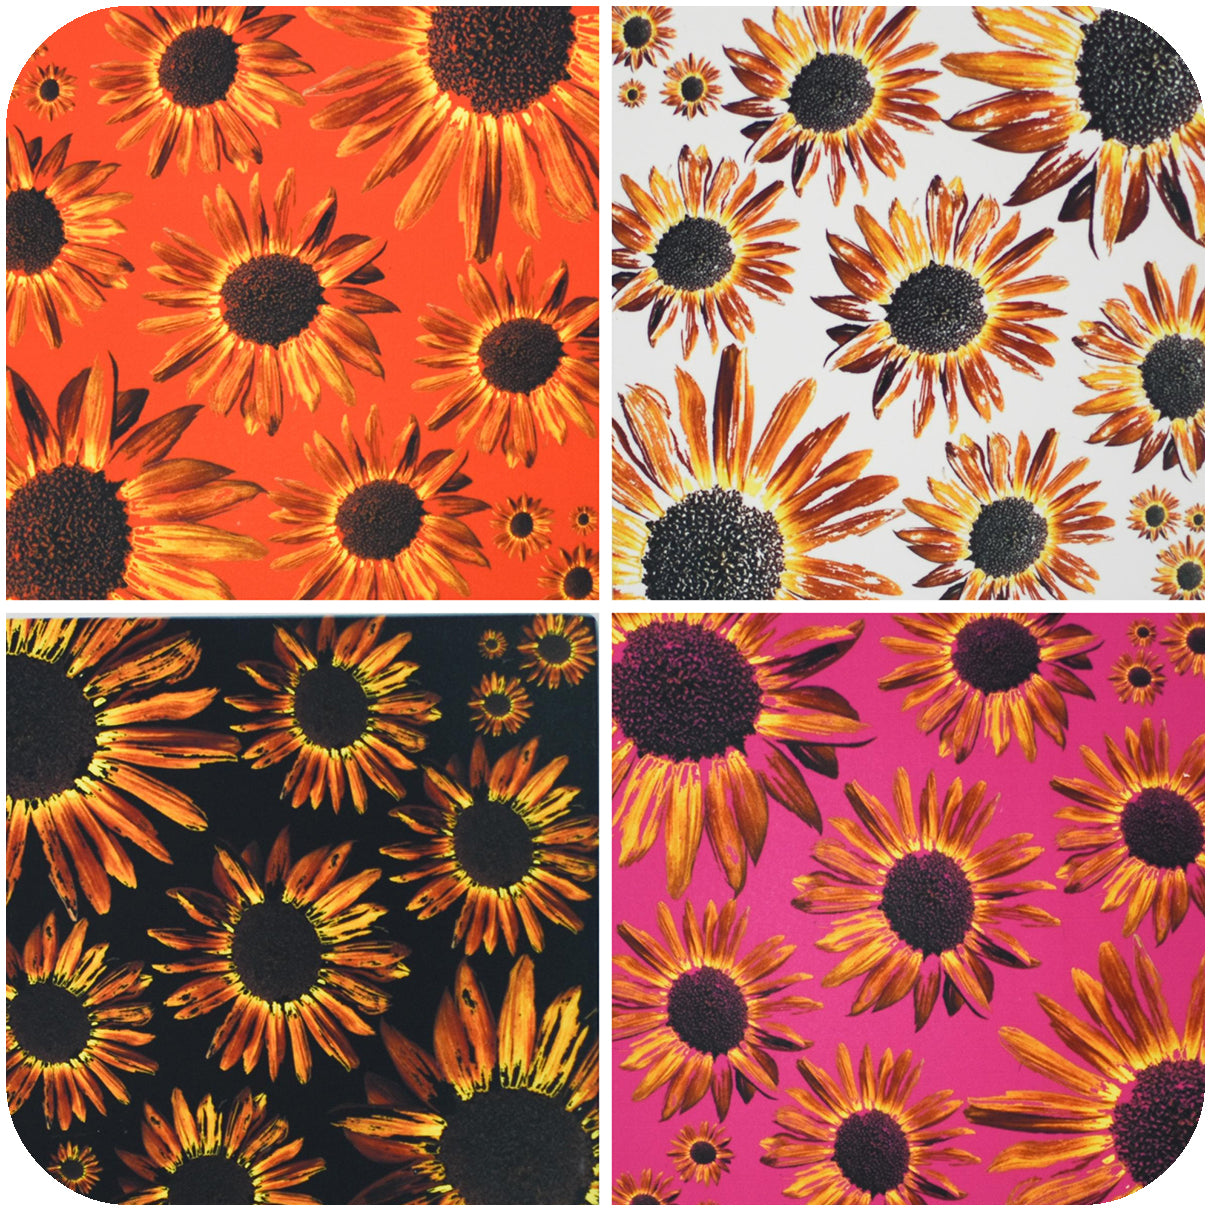 Standard view of all 4 sunflower coasters | Wear the Wonder